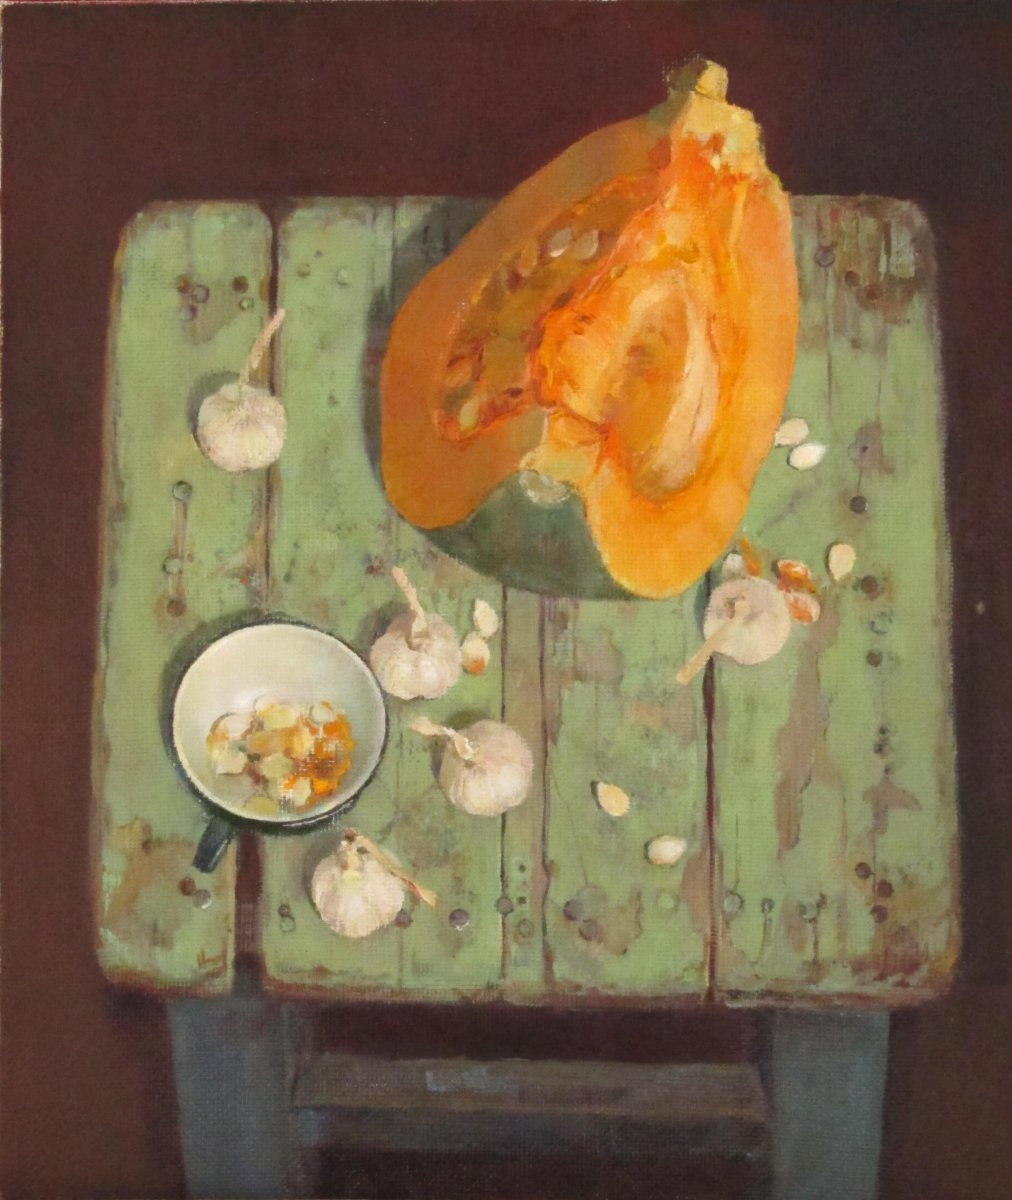 piece of pumpkin - Evgenia Trifonova